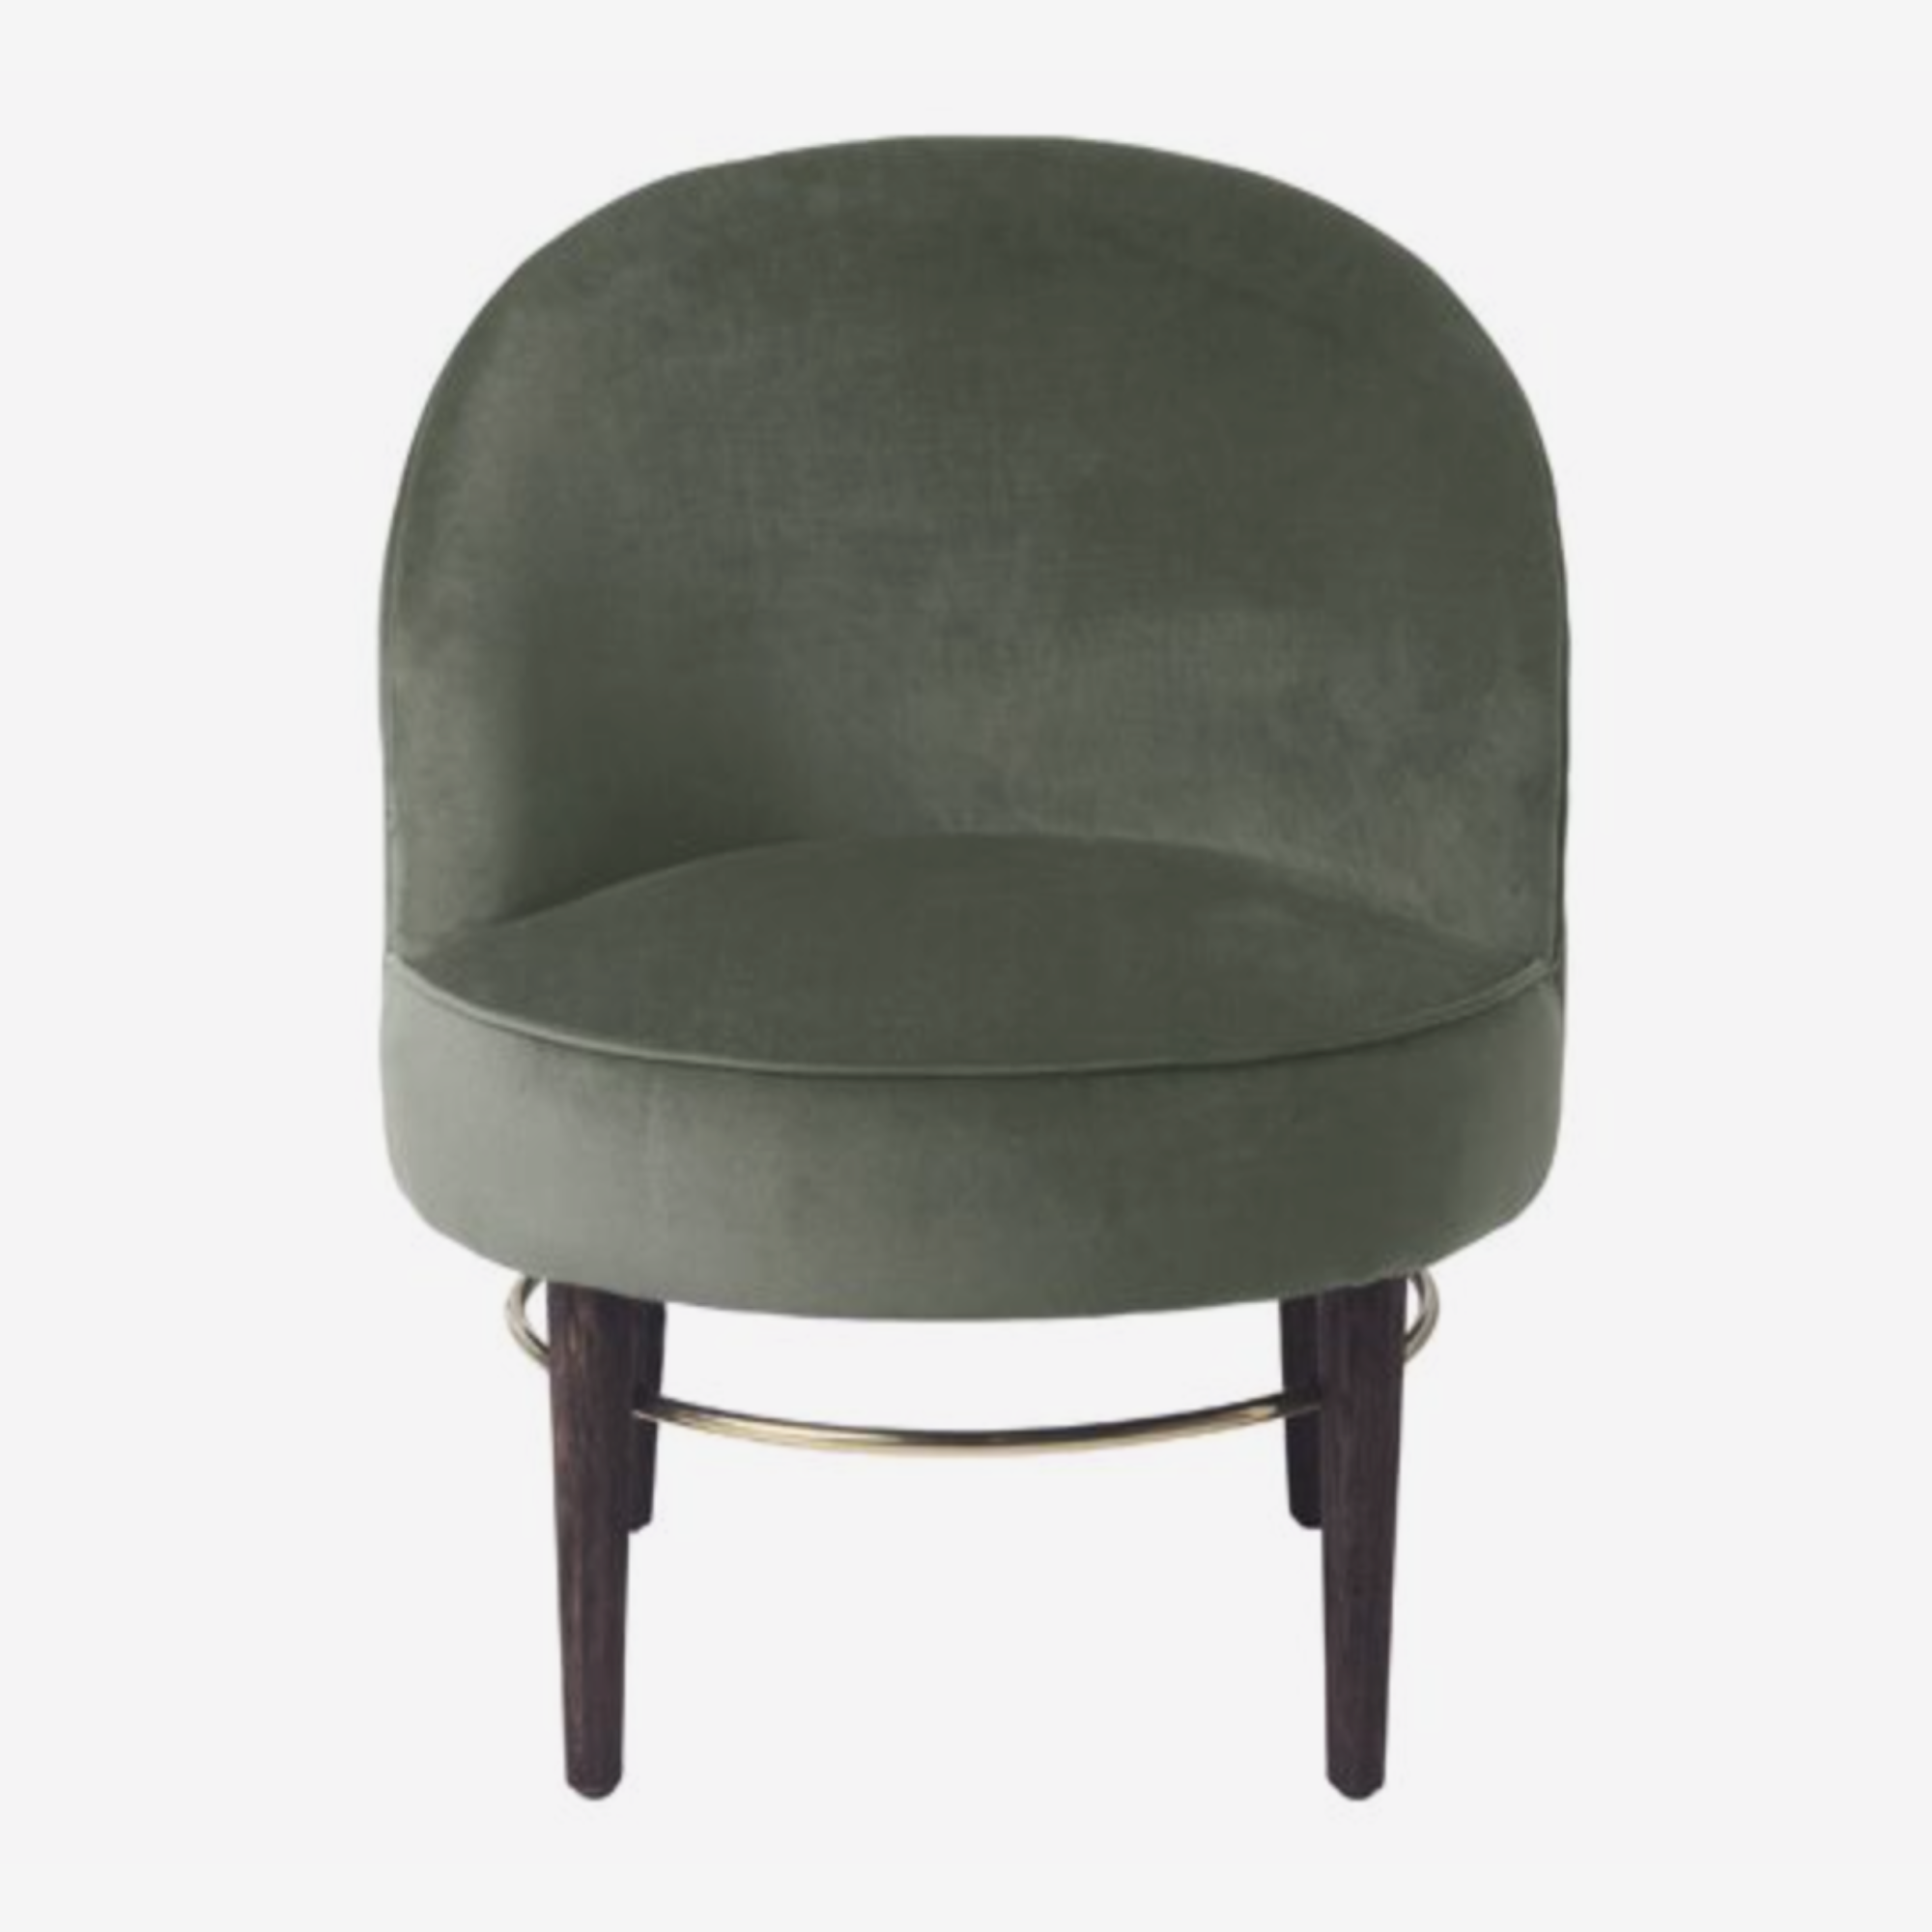 cozy living – Club lounge chair - army fra nordlyhome.dk